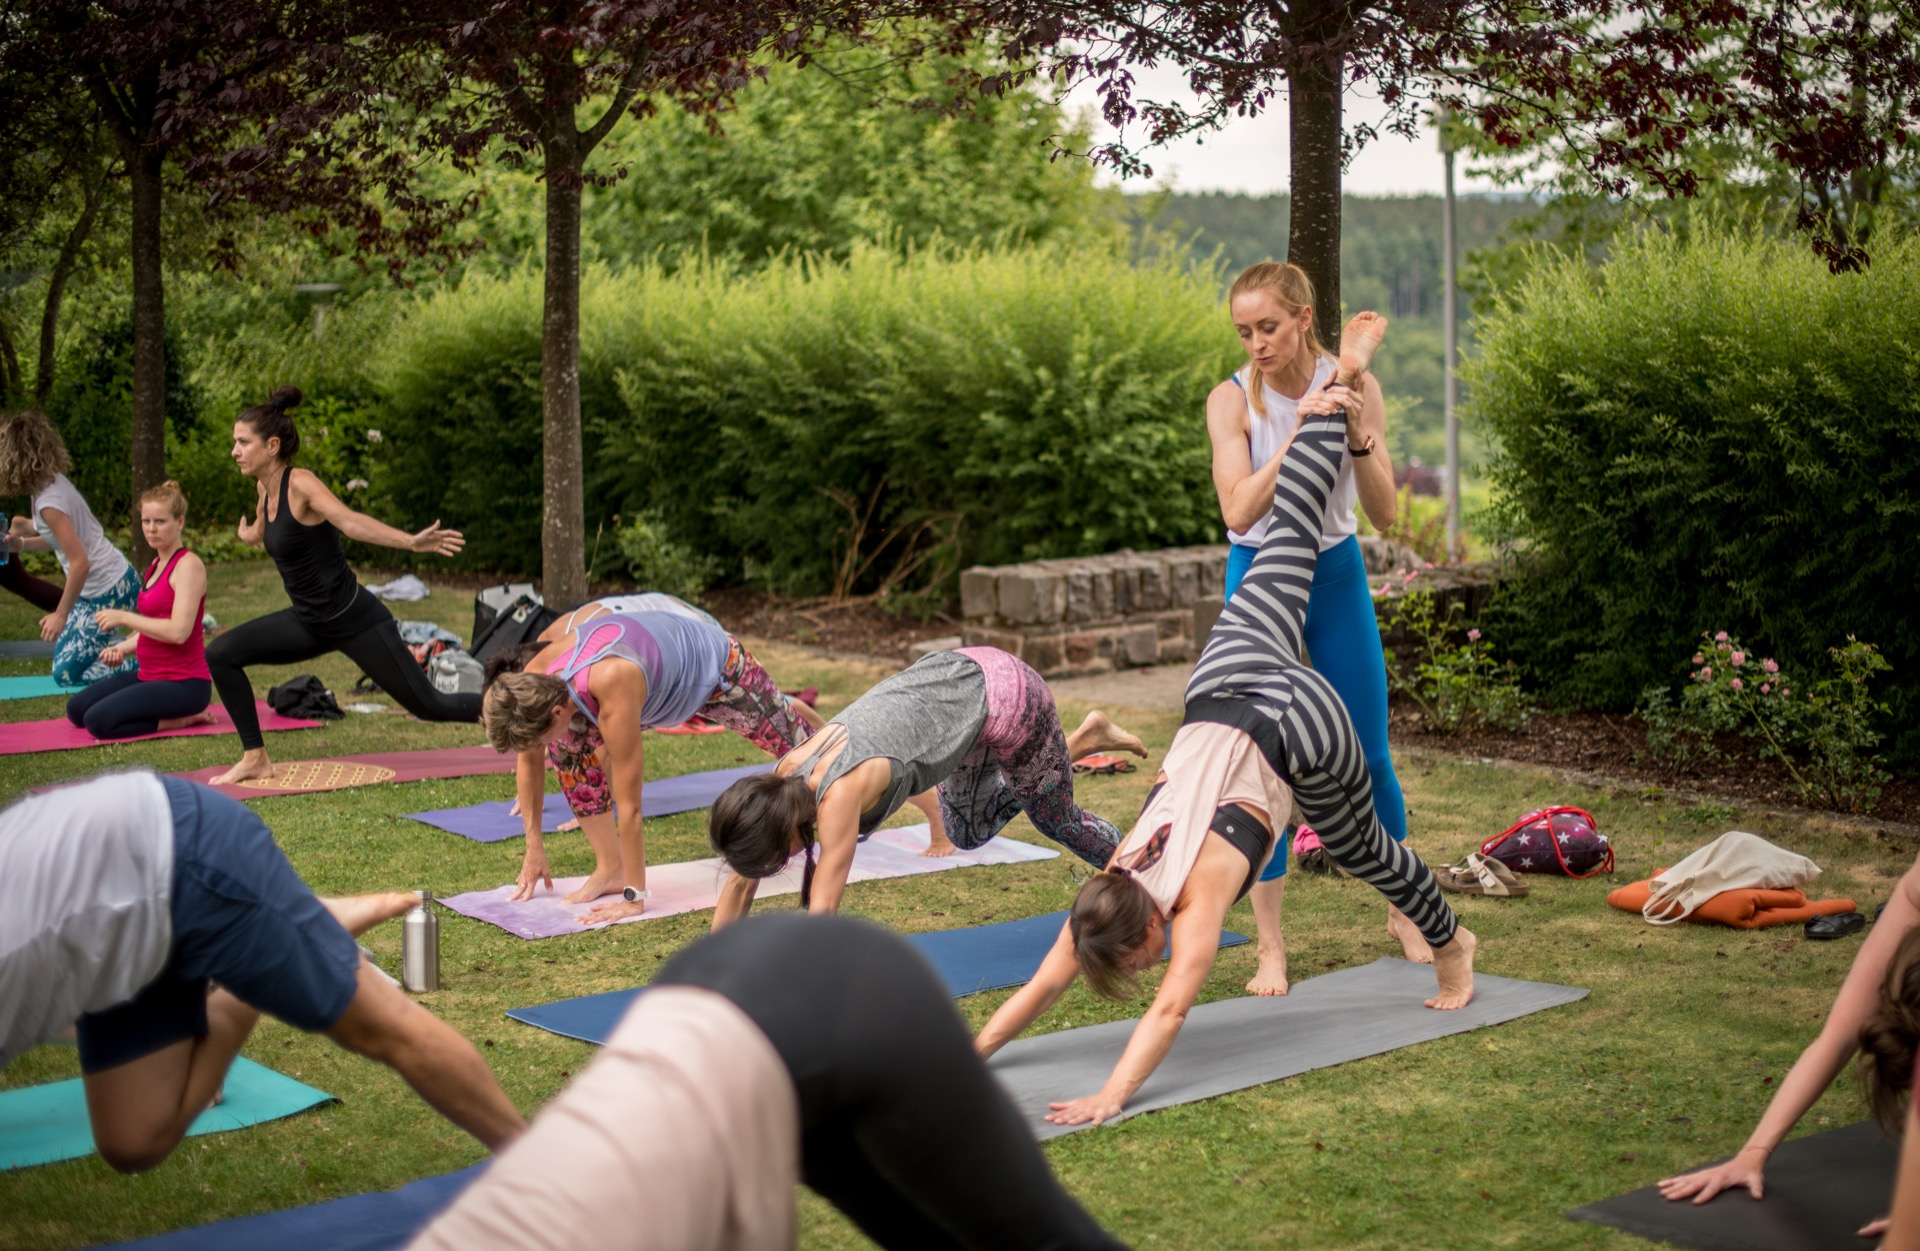 Hie-Kim-Friends-2019-Yoga-Retreat-Alina-Matis-Photography-128 - Hie Kim Yoga - Yoga Retreat - Yoga Workshops und Reisen